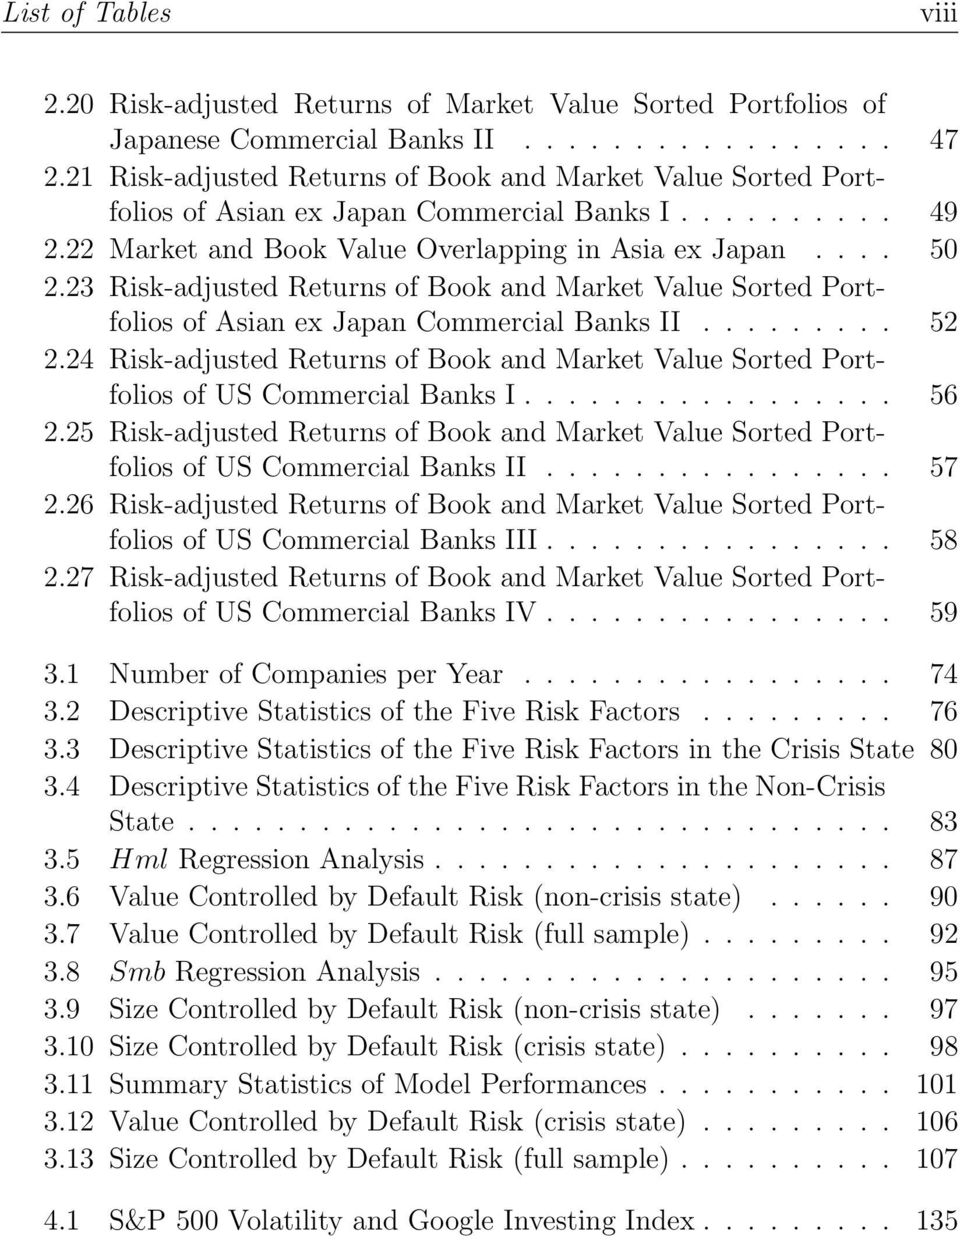 23 Risk-adjusted Returns of Book and Market Value Sorted Portfolios of Asian ex Japan Commercial Banks II......... 52 2.